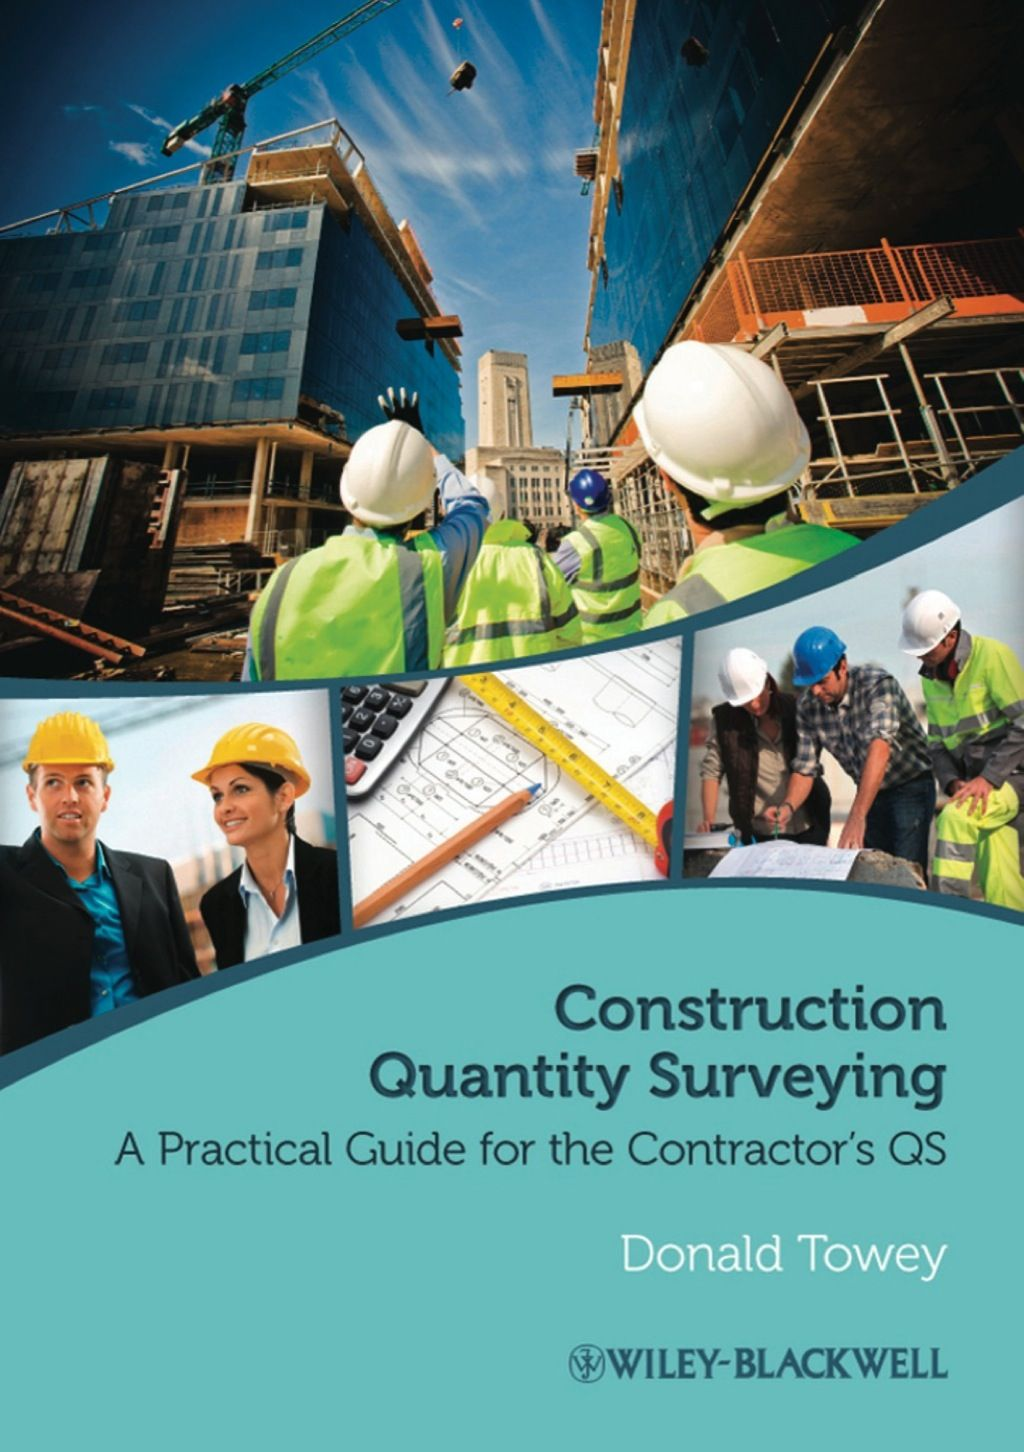 Pin By Rich Mantz On Carpentry Surveying Construction